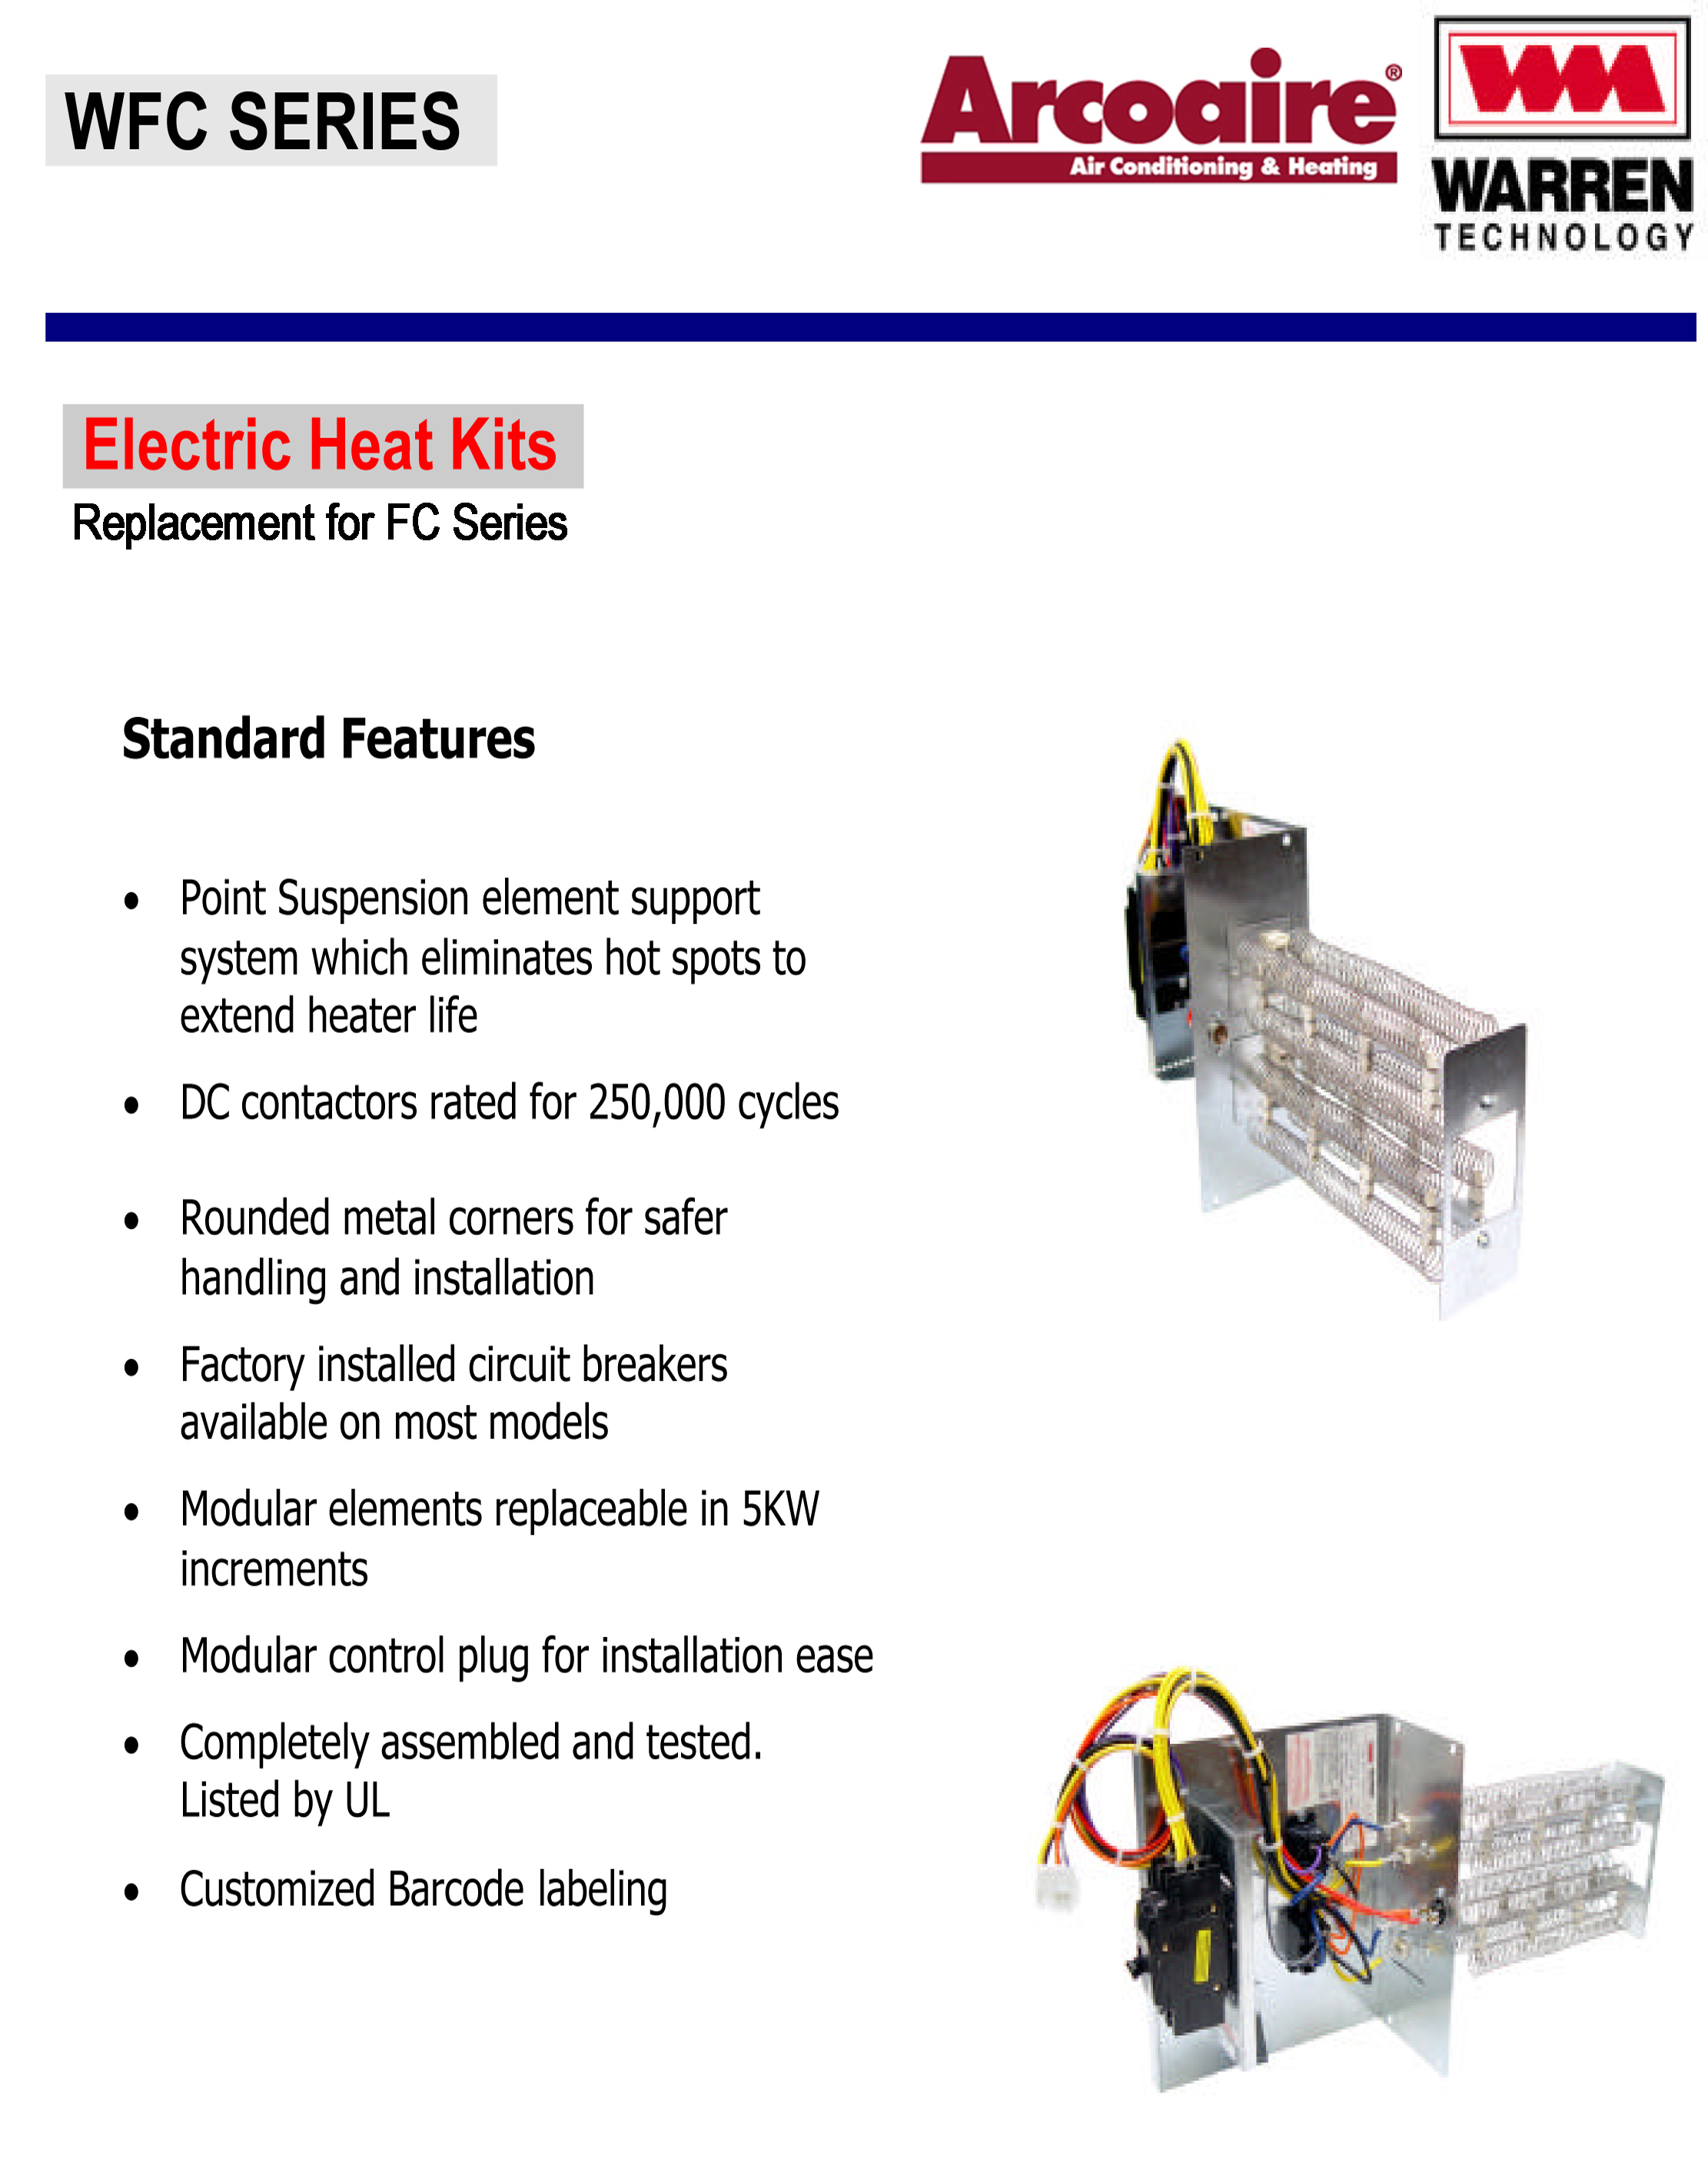 Arcoaire Heat Pump Wiring Diagram : Heil air handler wiring diagram get free image about